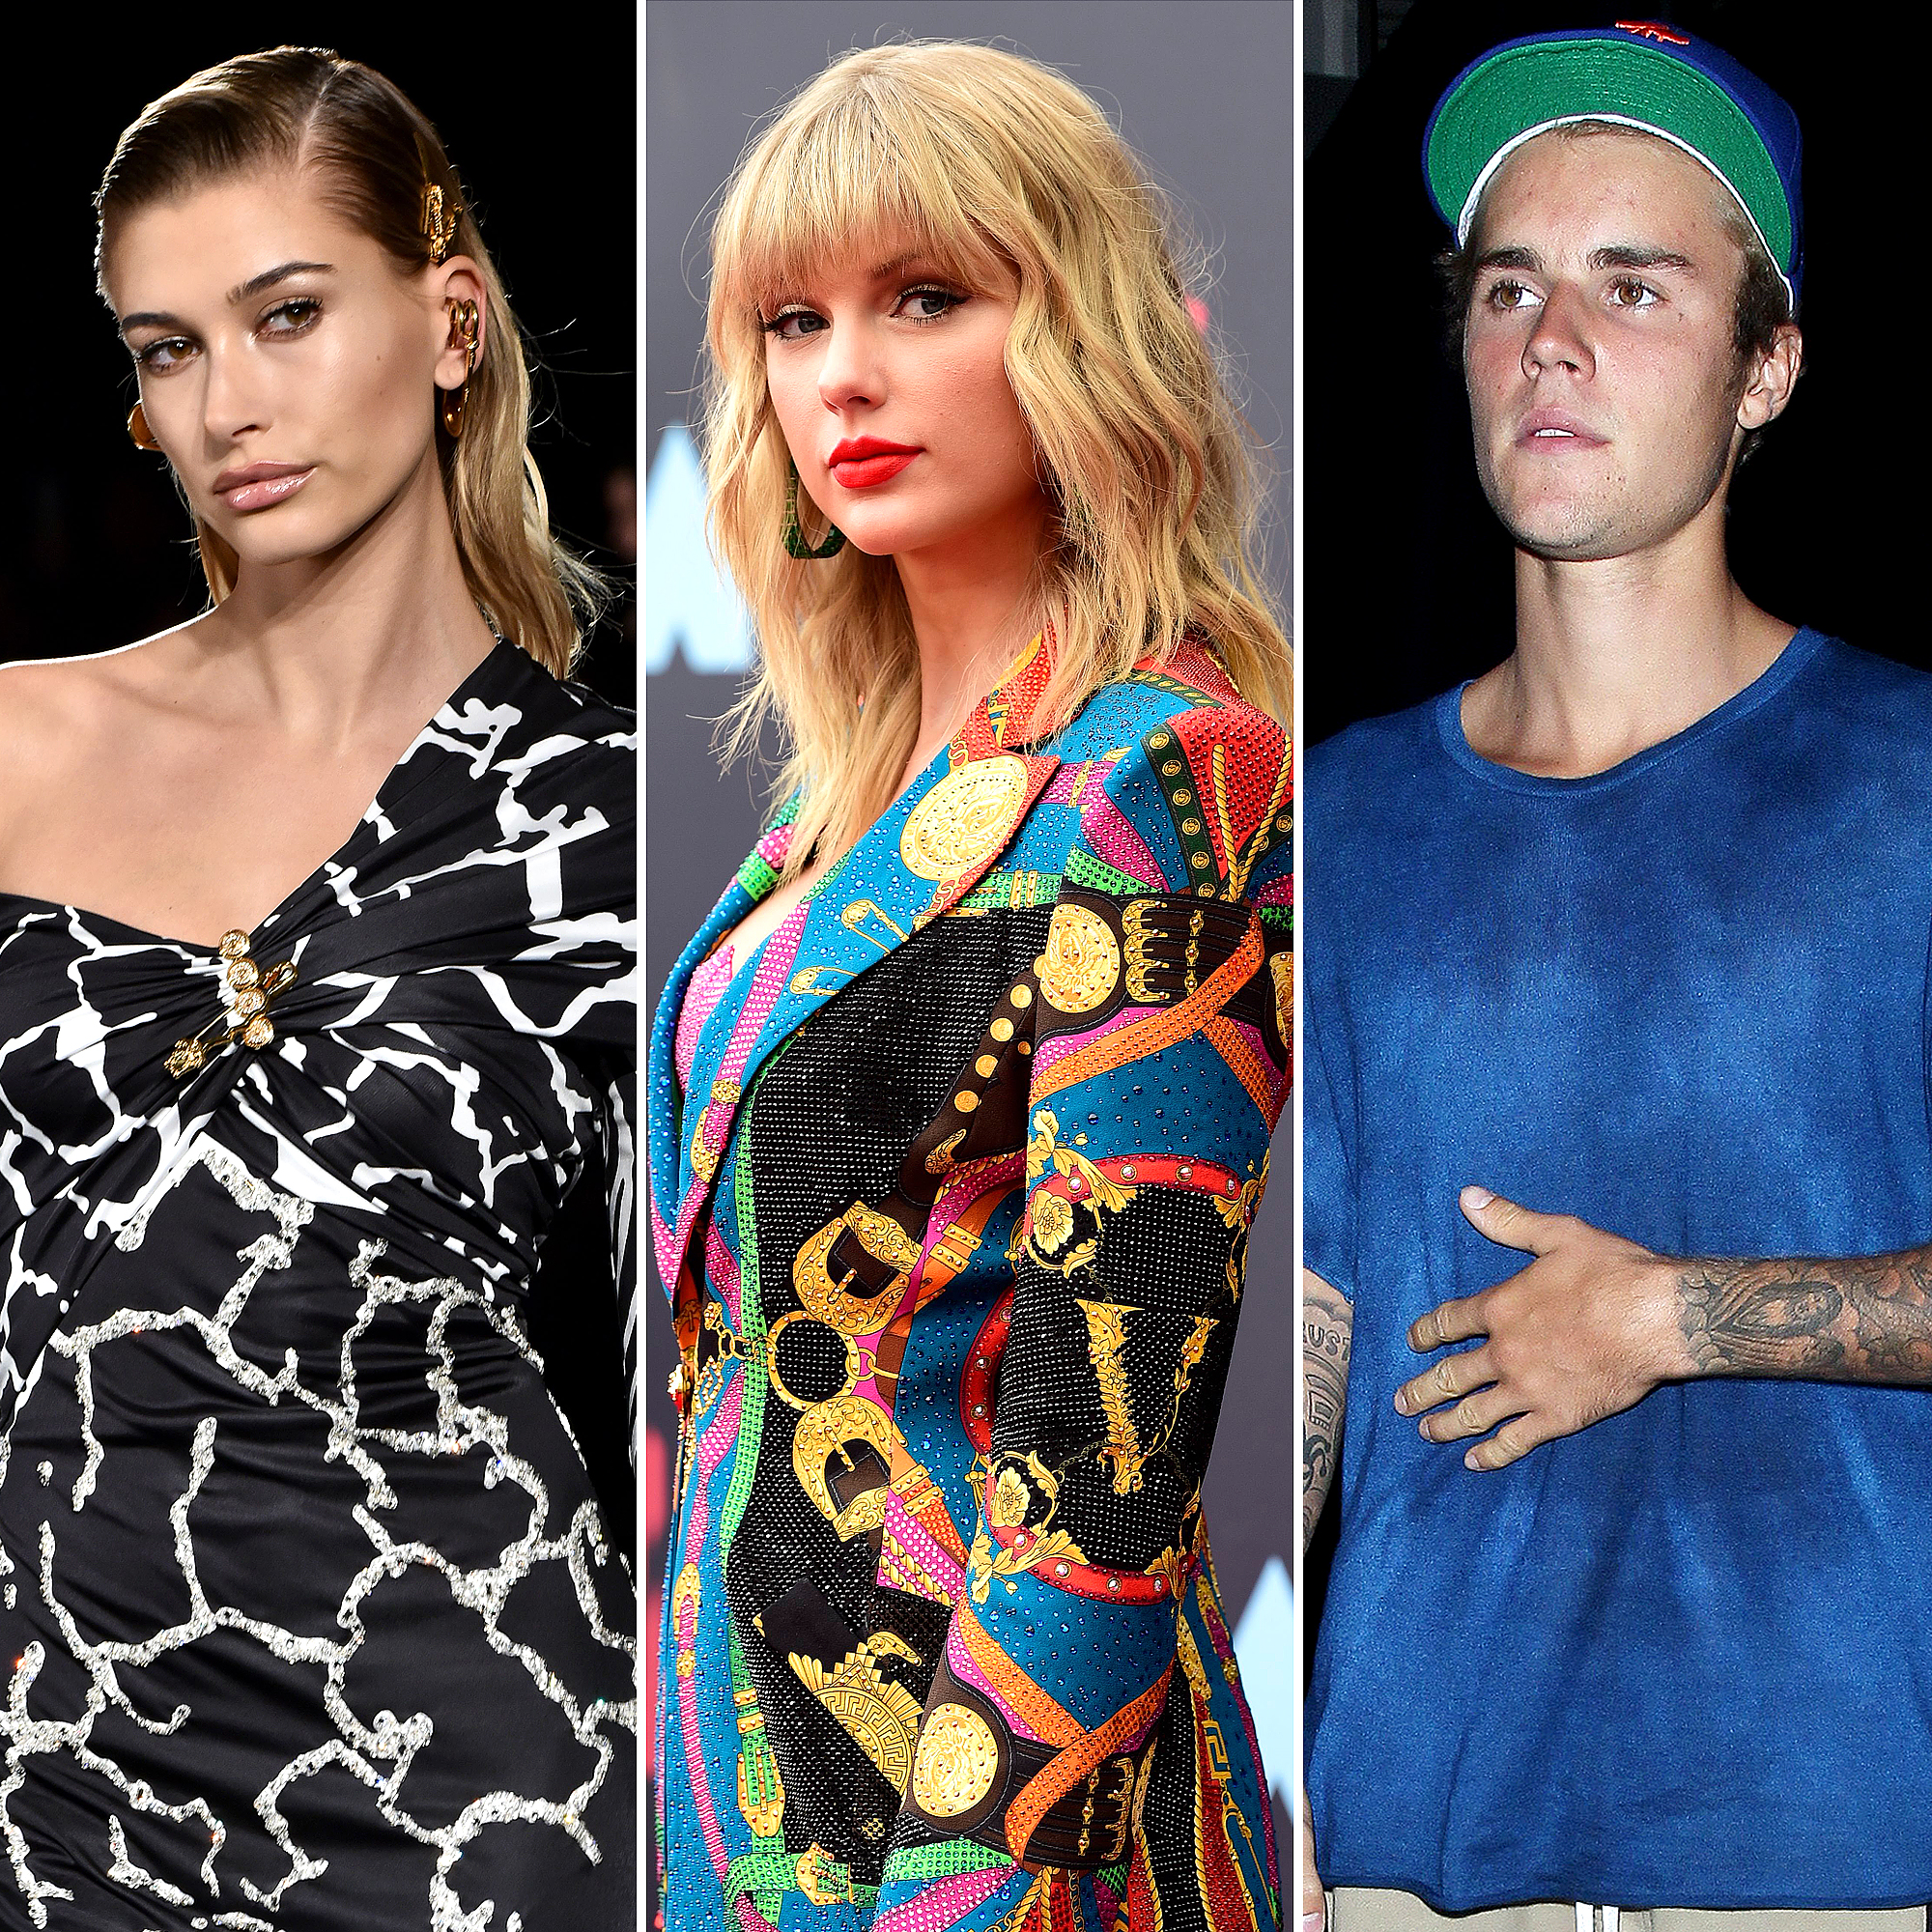 Hailey Baldwin Apologizes Upset Taylor Swift Fan After Justin Bieber Mocks Post Surgery Video